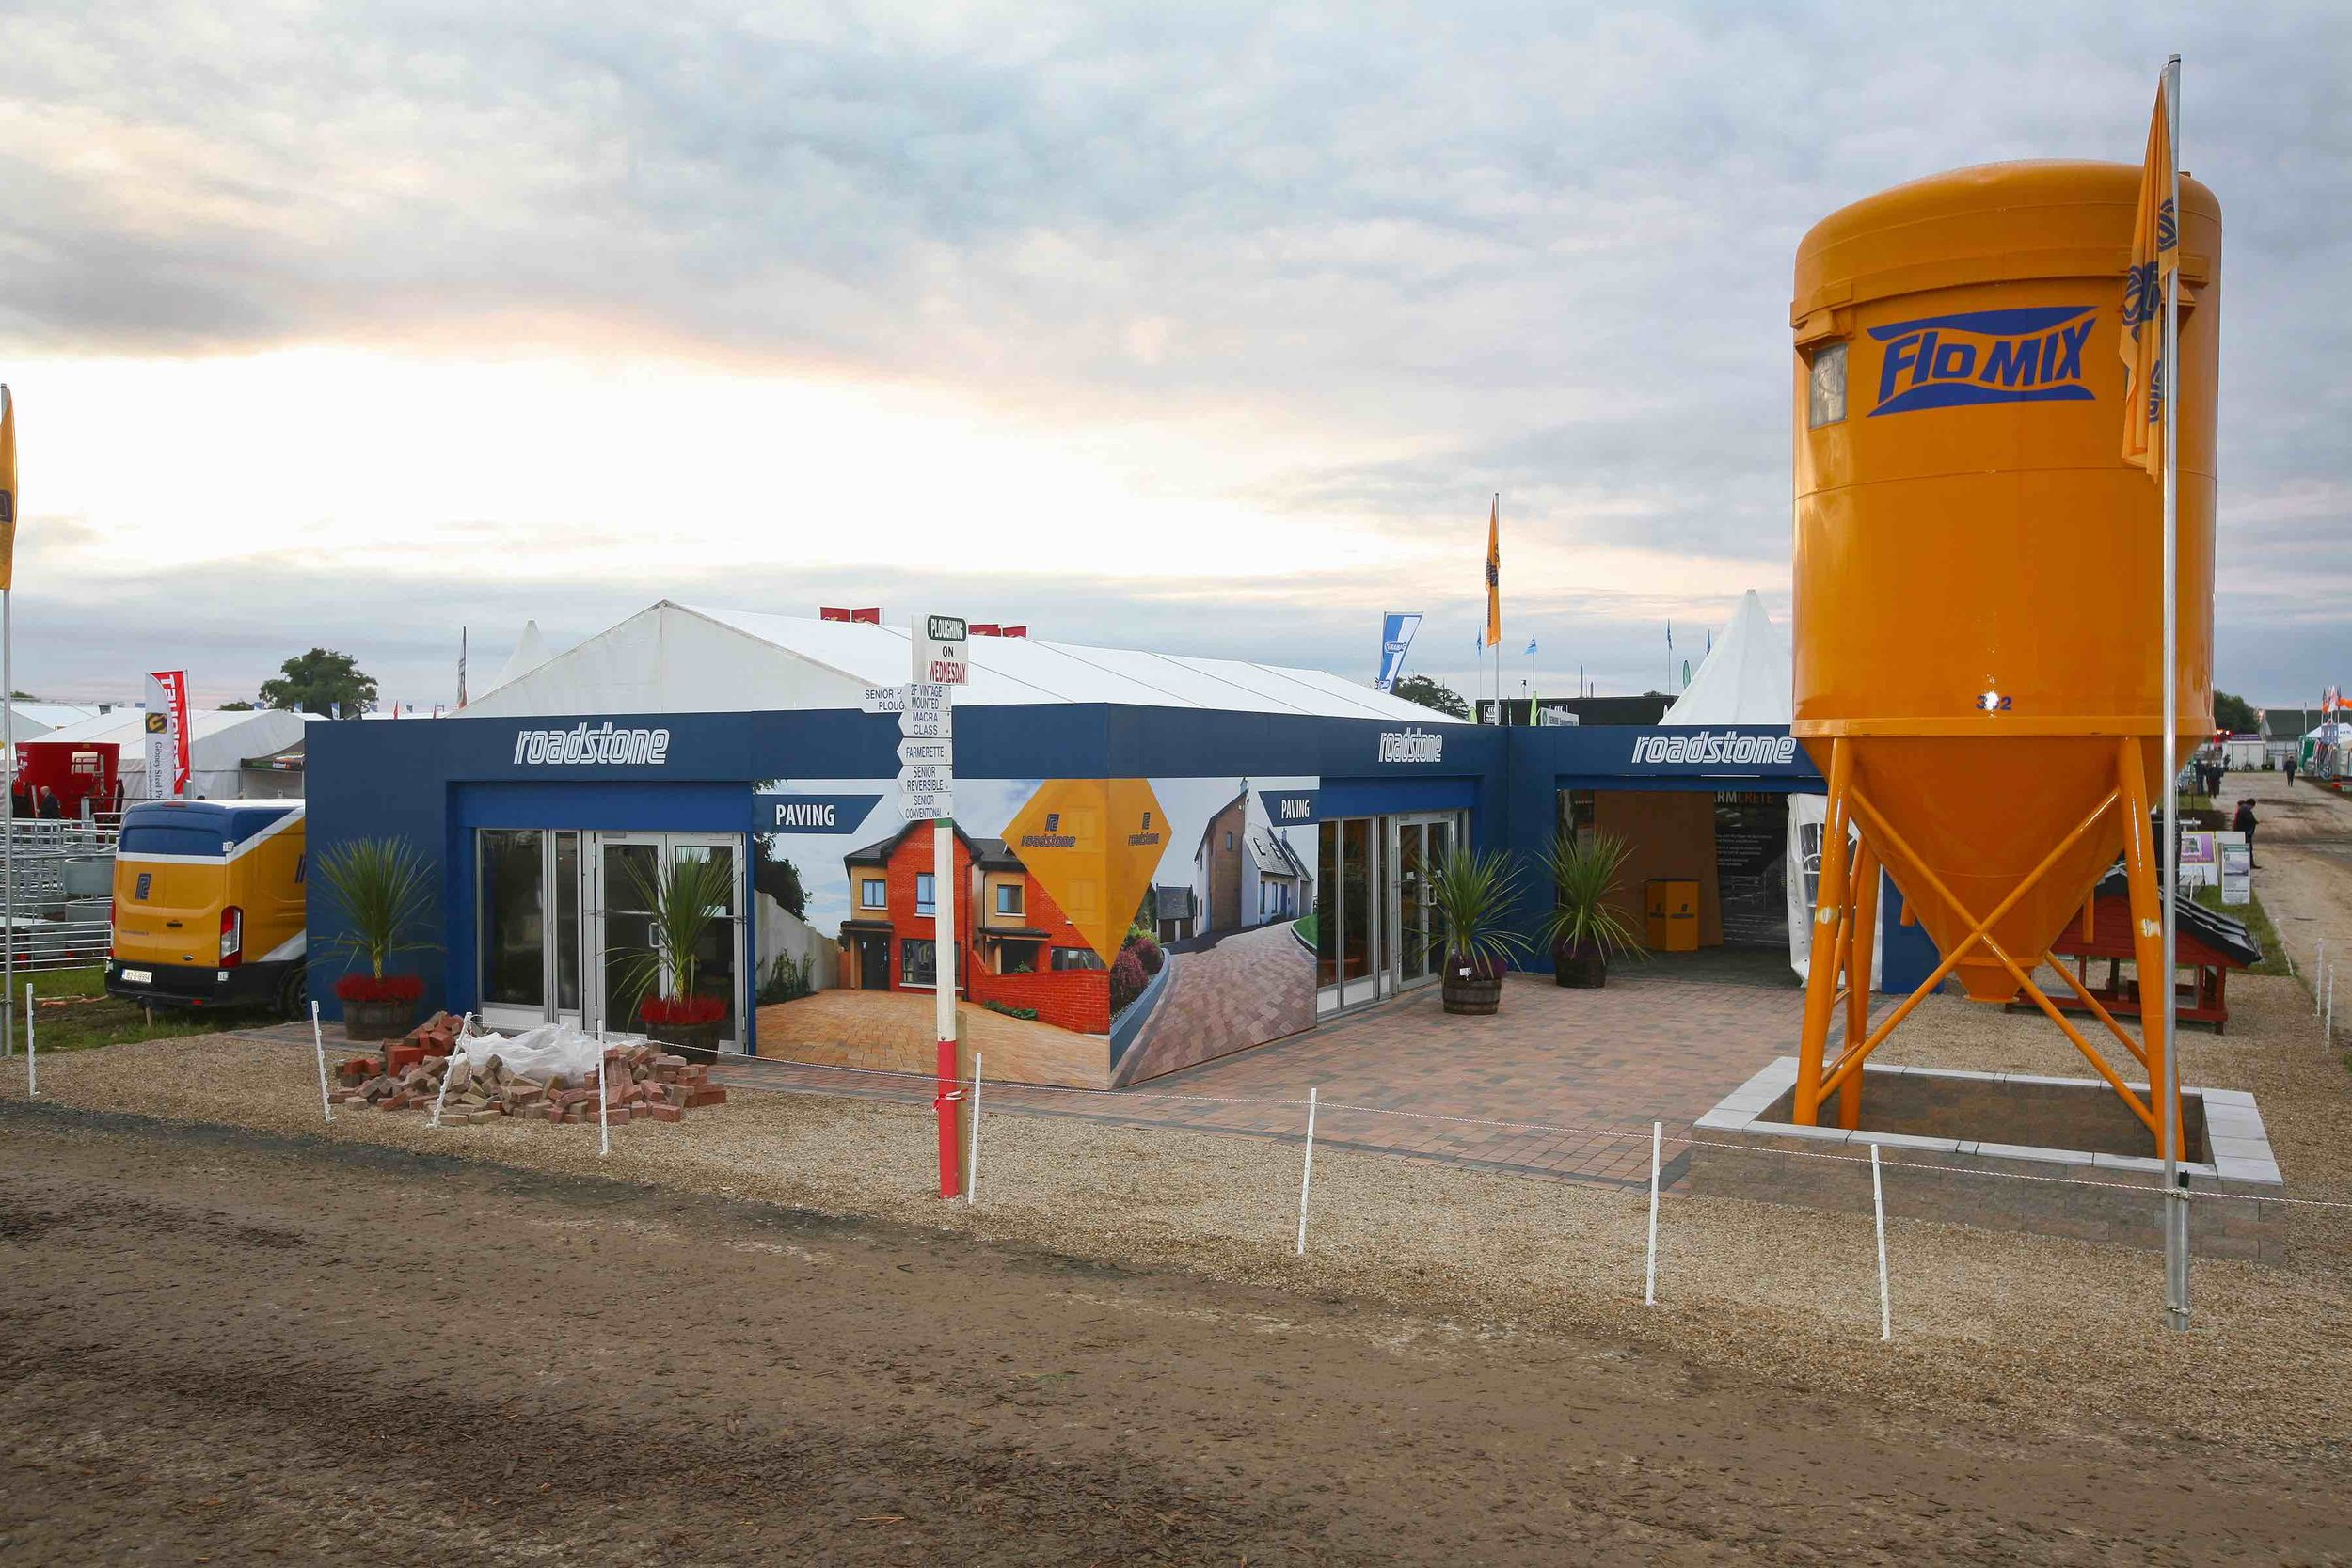 Roadstone Exhibition Stand at The National Ploughing Championships 2017